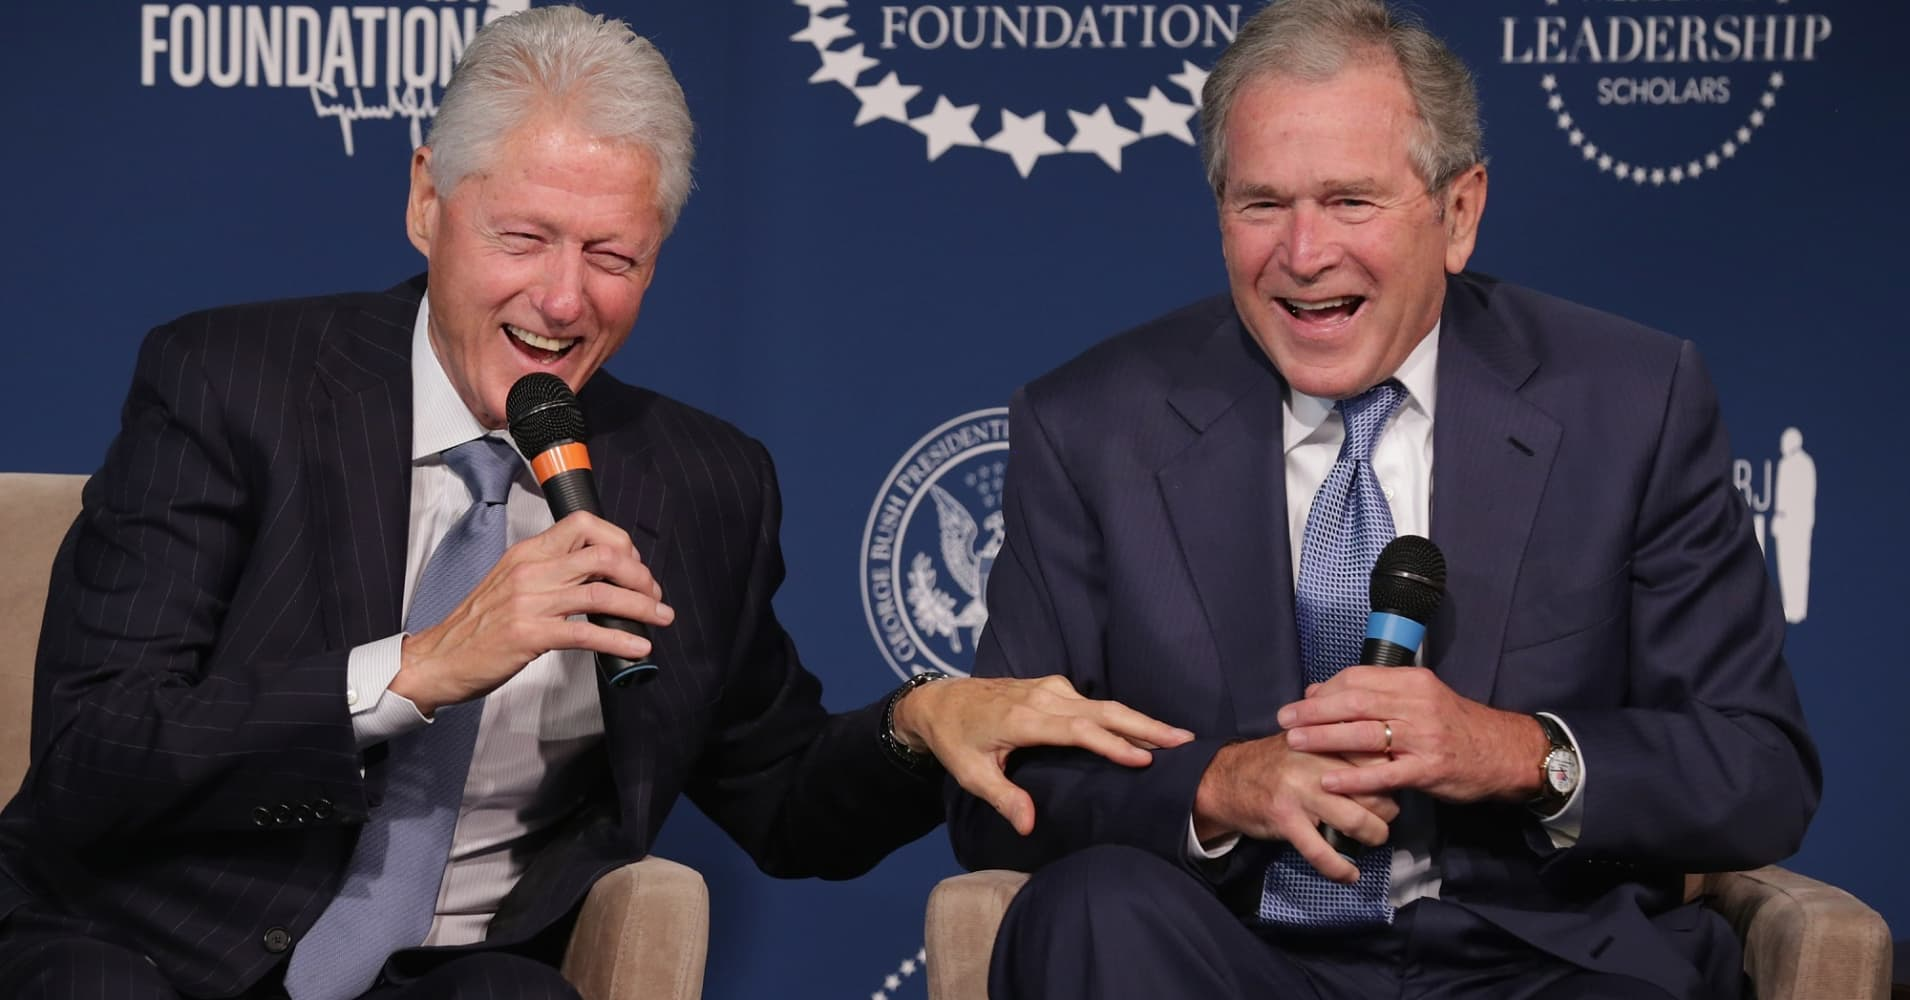 Bill Clinton and George W. Bush say successful leaders have these 4 qualities